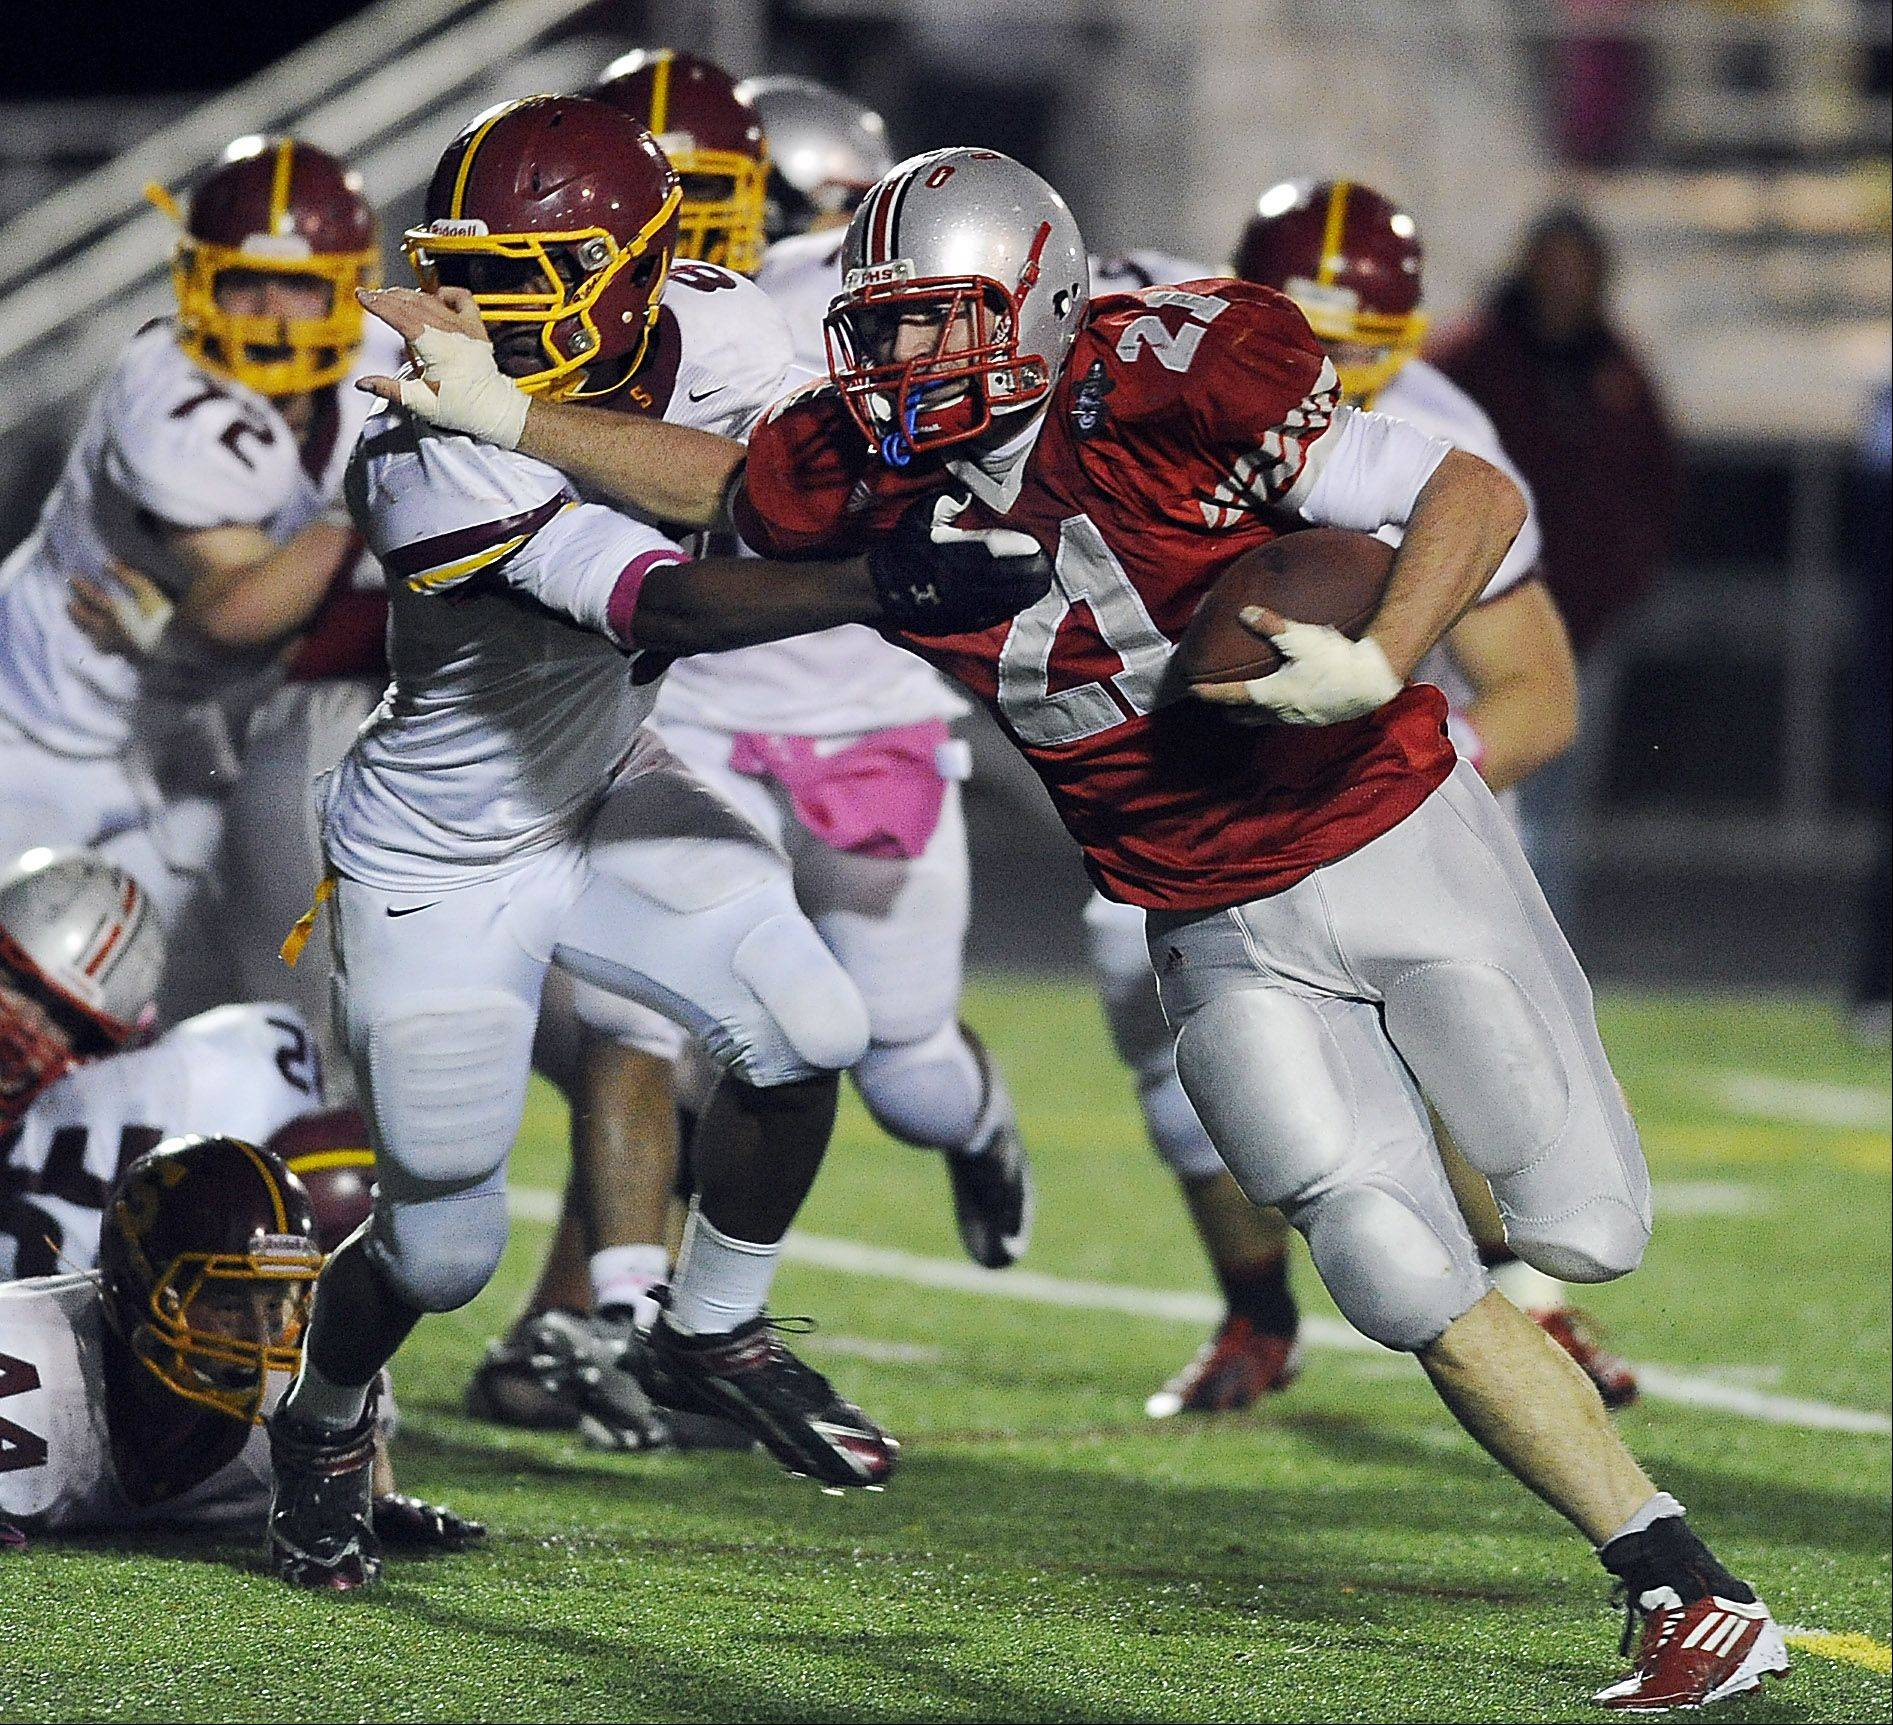 Palatine's John Serio fights off a Schaumburg defender in the first half to score a touchdown.